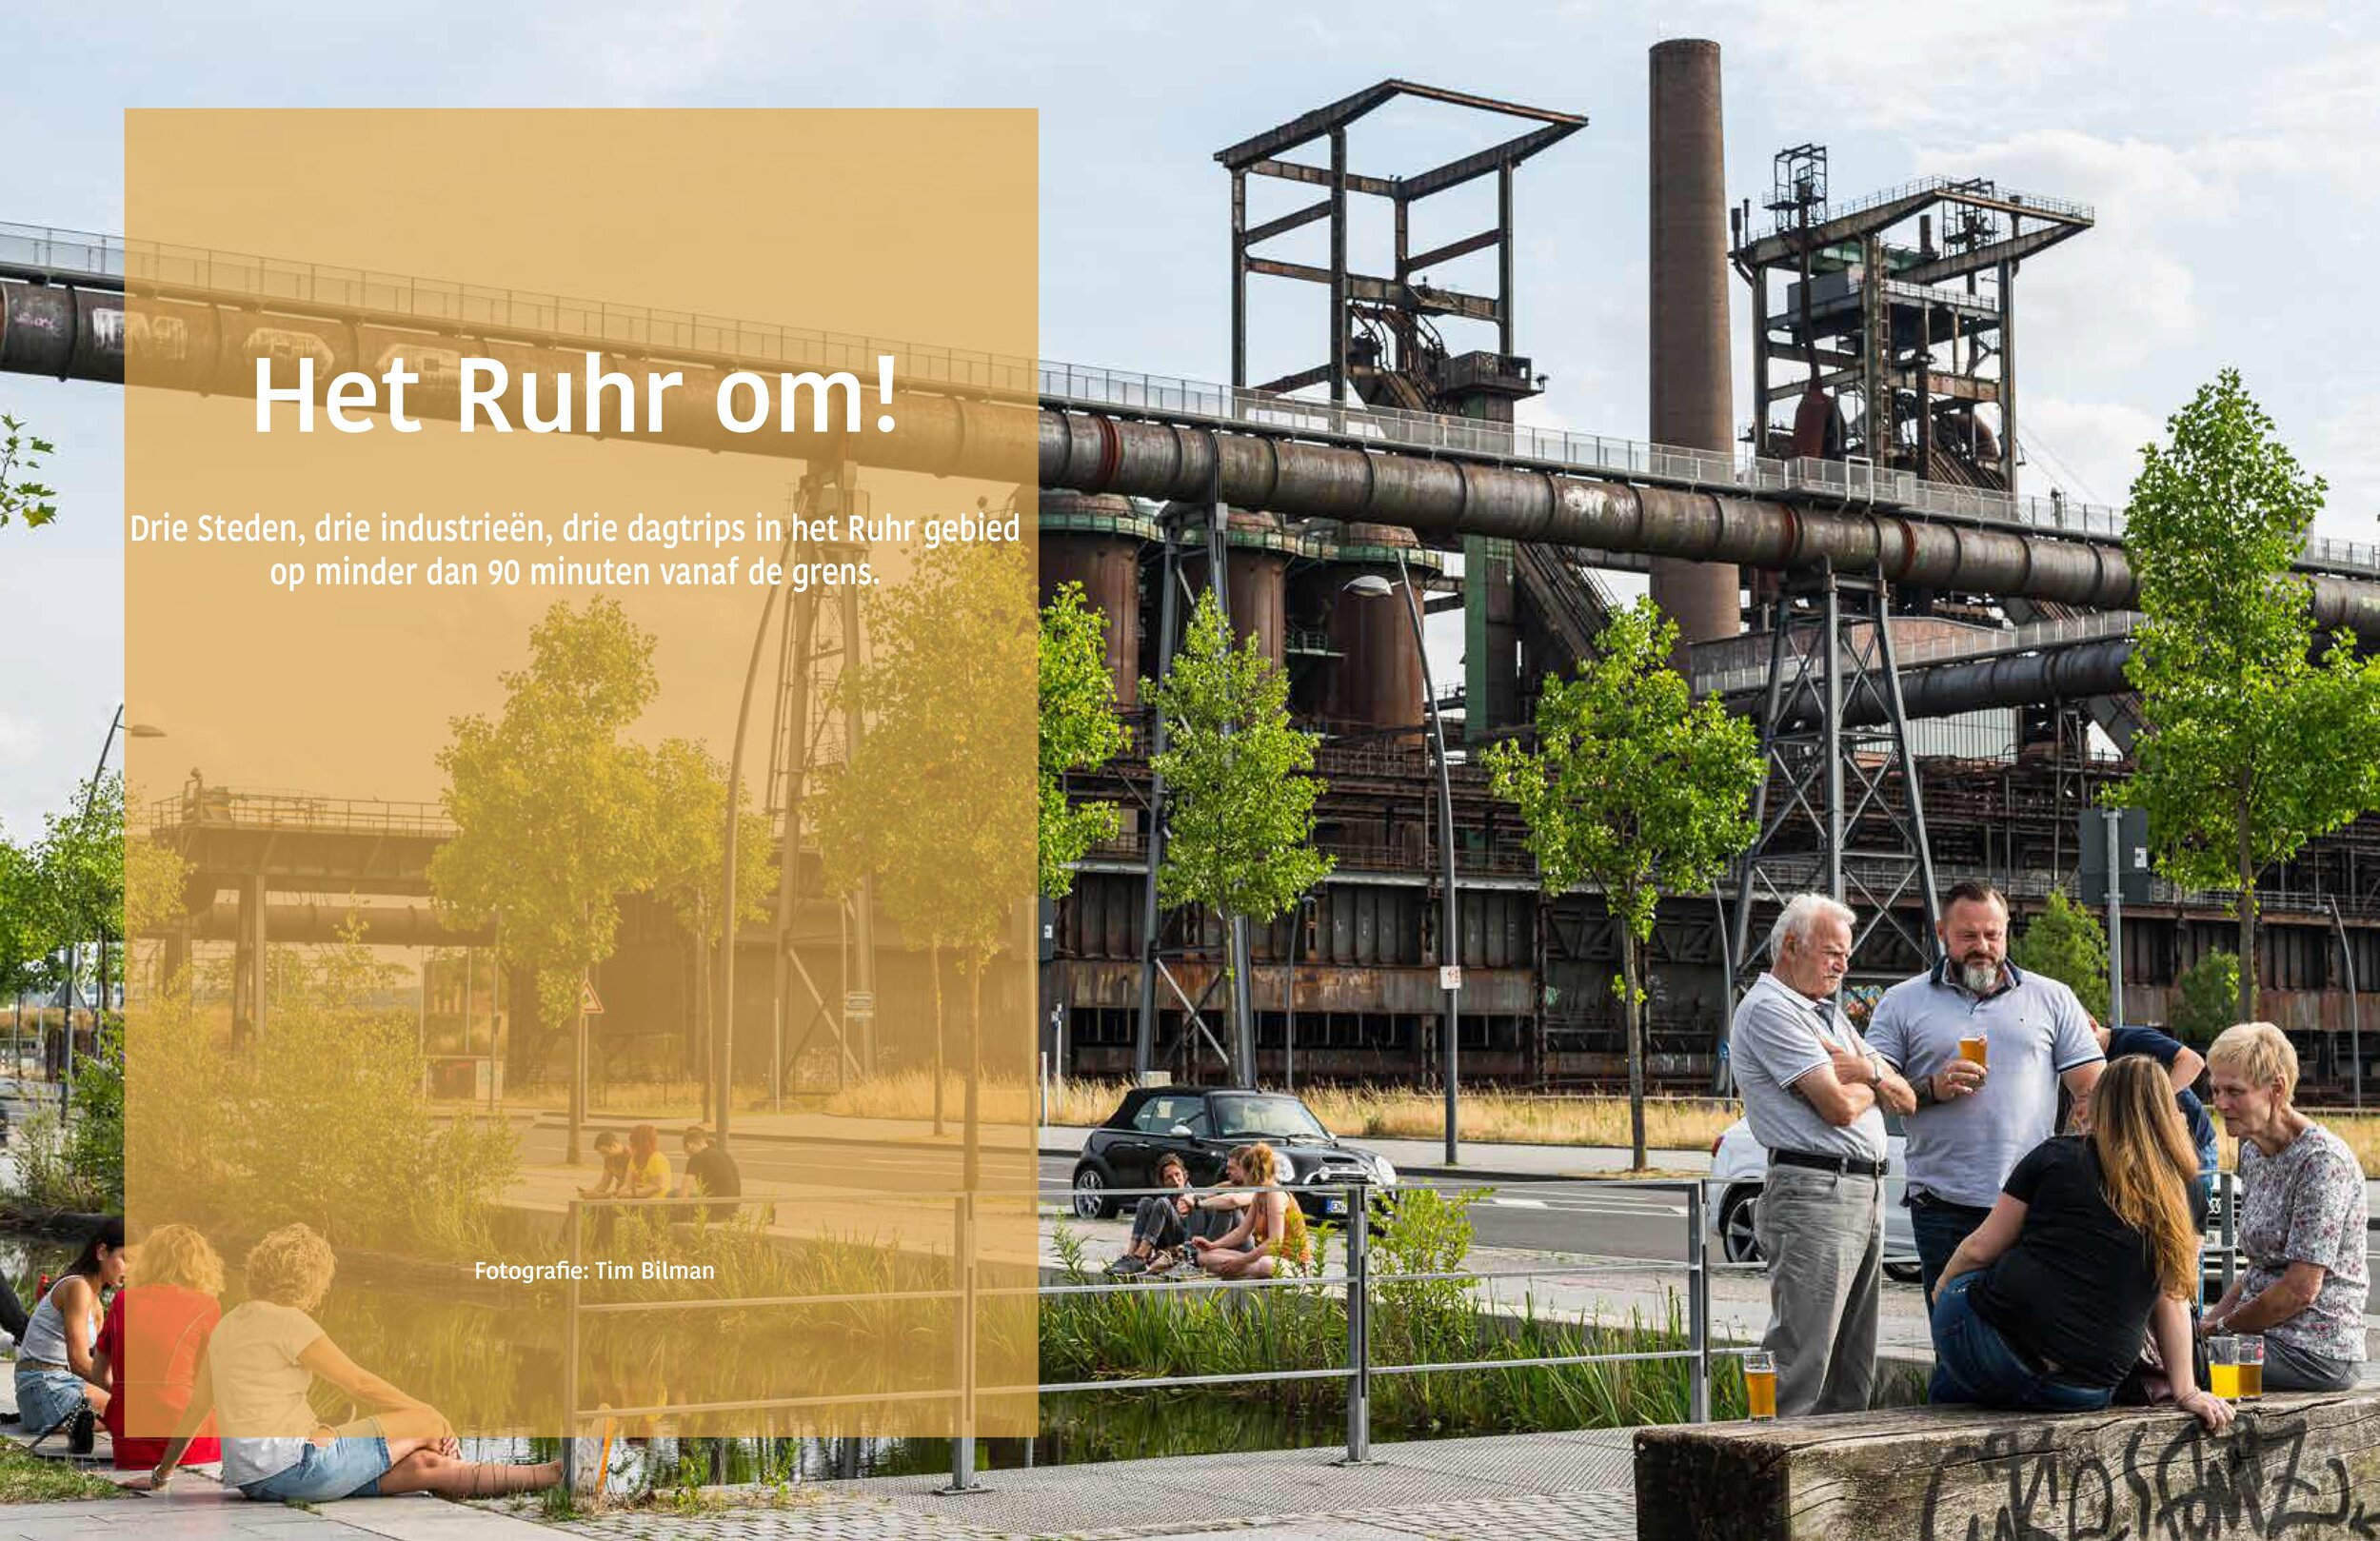 Ruhr Area - For the dutch magazine Caravannen! I wrote an article about the Ruhr area in west Germany. This article is all about reusing old polluting industrial buildings. The article was published October '19 in Caravannen!.